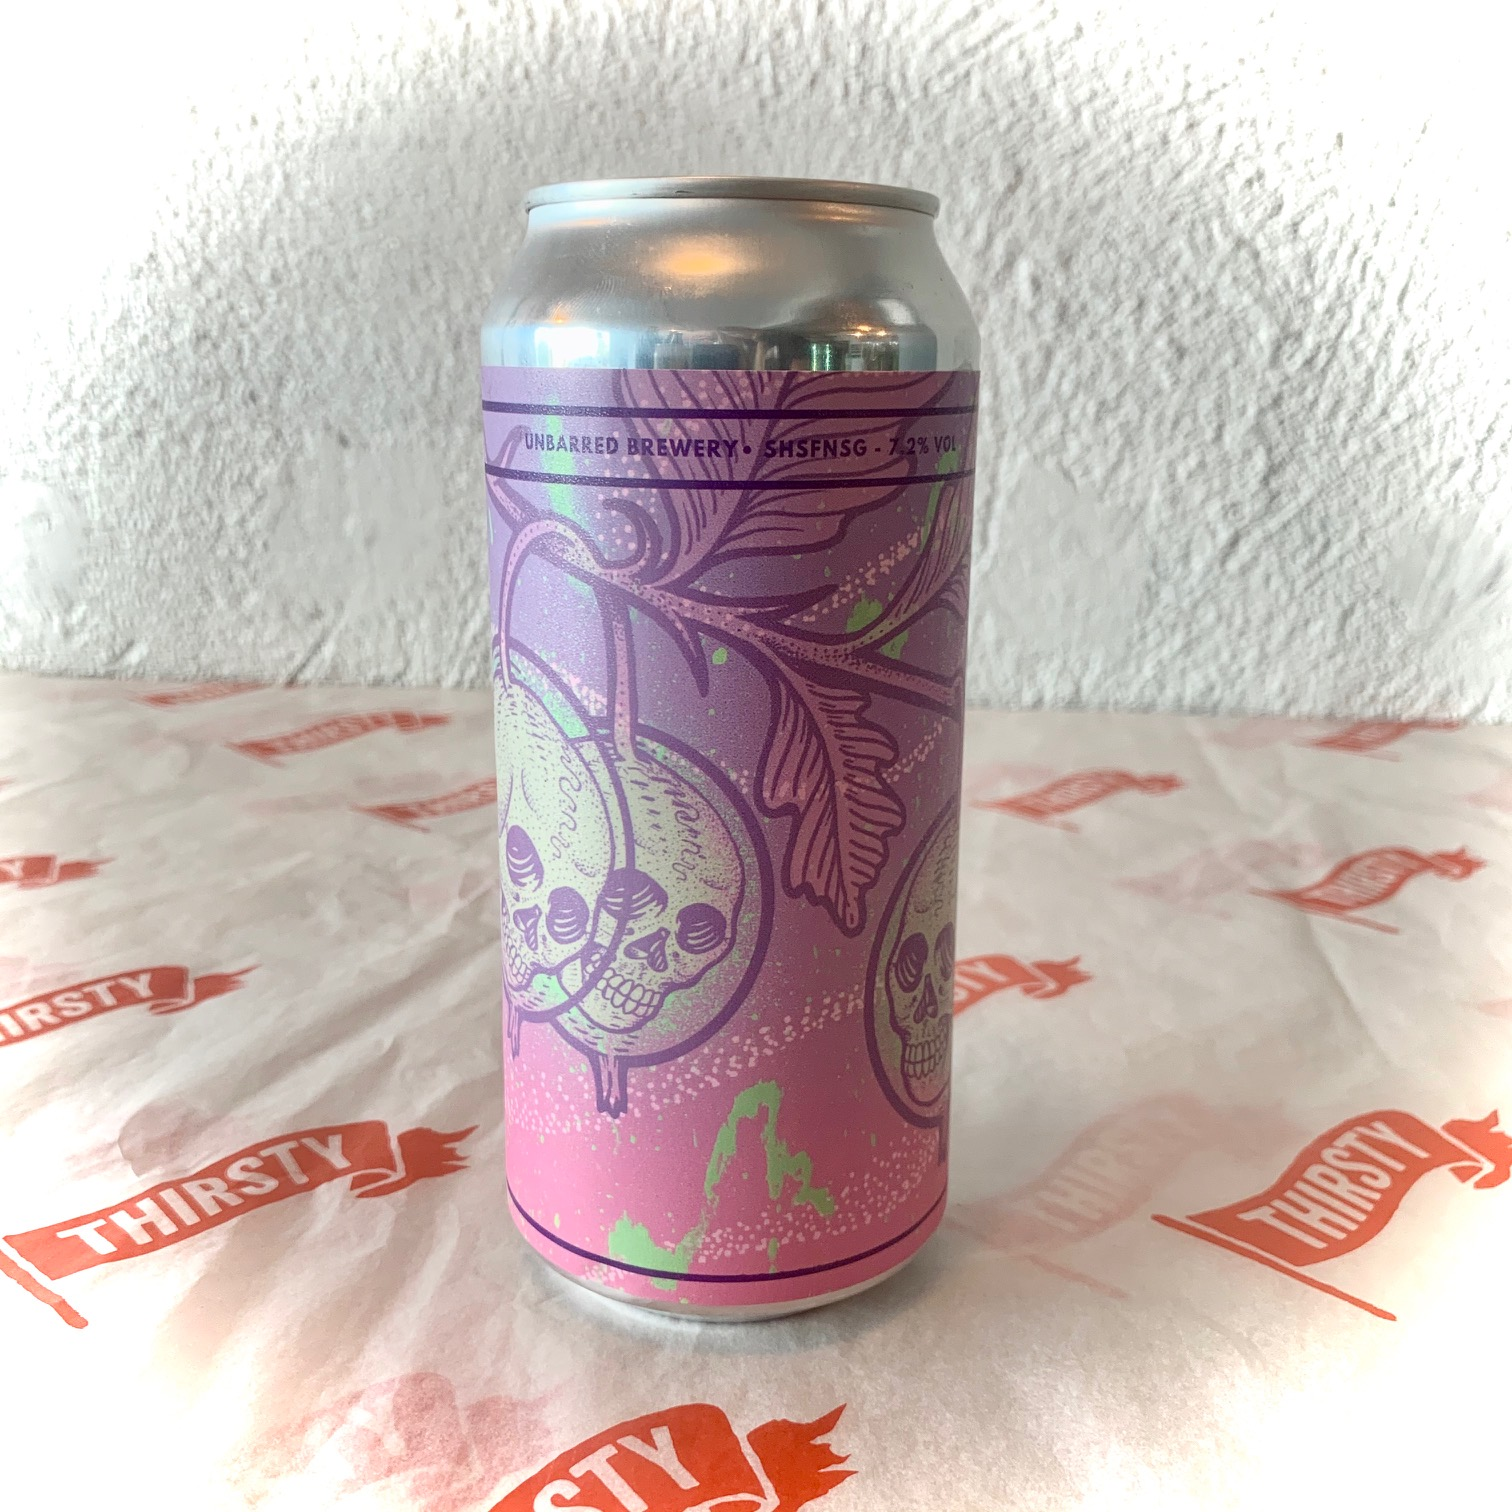 Unbarred | Nelson Sauvin & Gooseberry | Single Fruit Single Hop Sour 7.2%